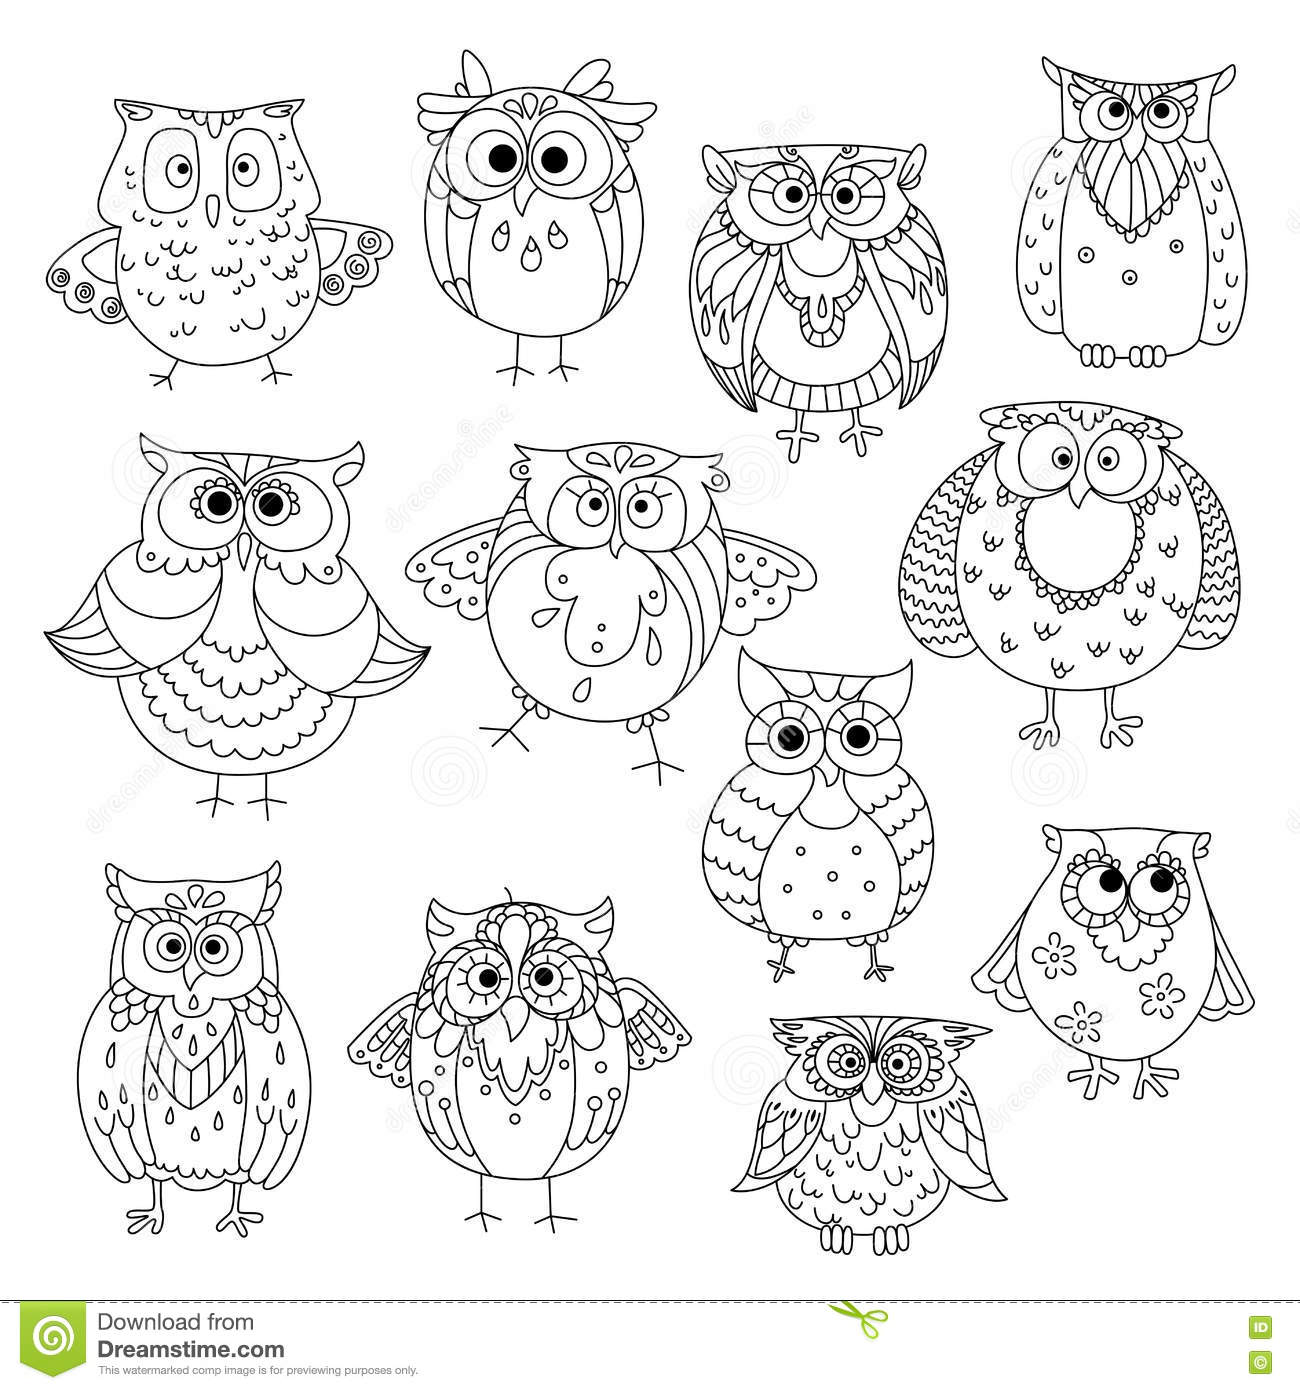 2f79df2dd Decorative sketches of cute owls with young owlets, wise horned owls and  funny barn owls, adorned by fluffy feather patterns, wavy lines and flowers.